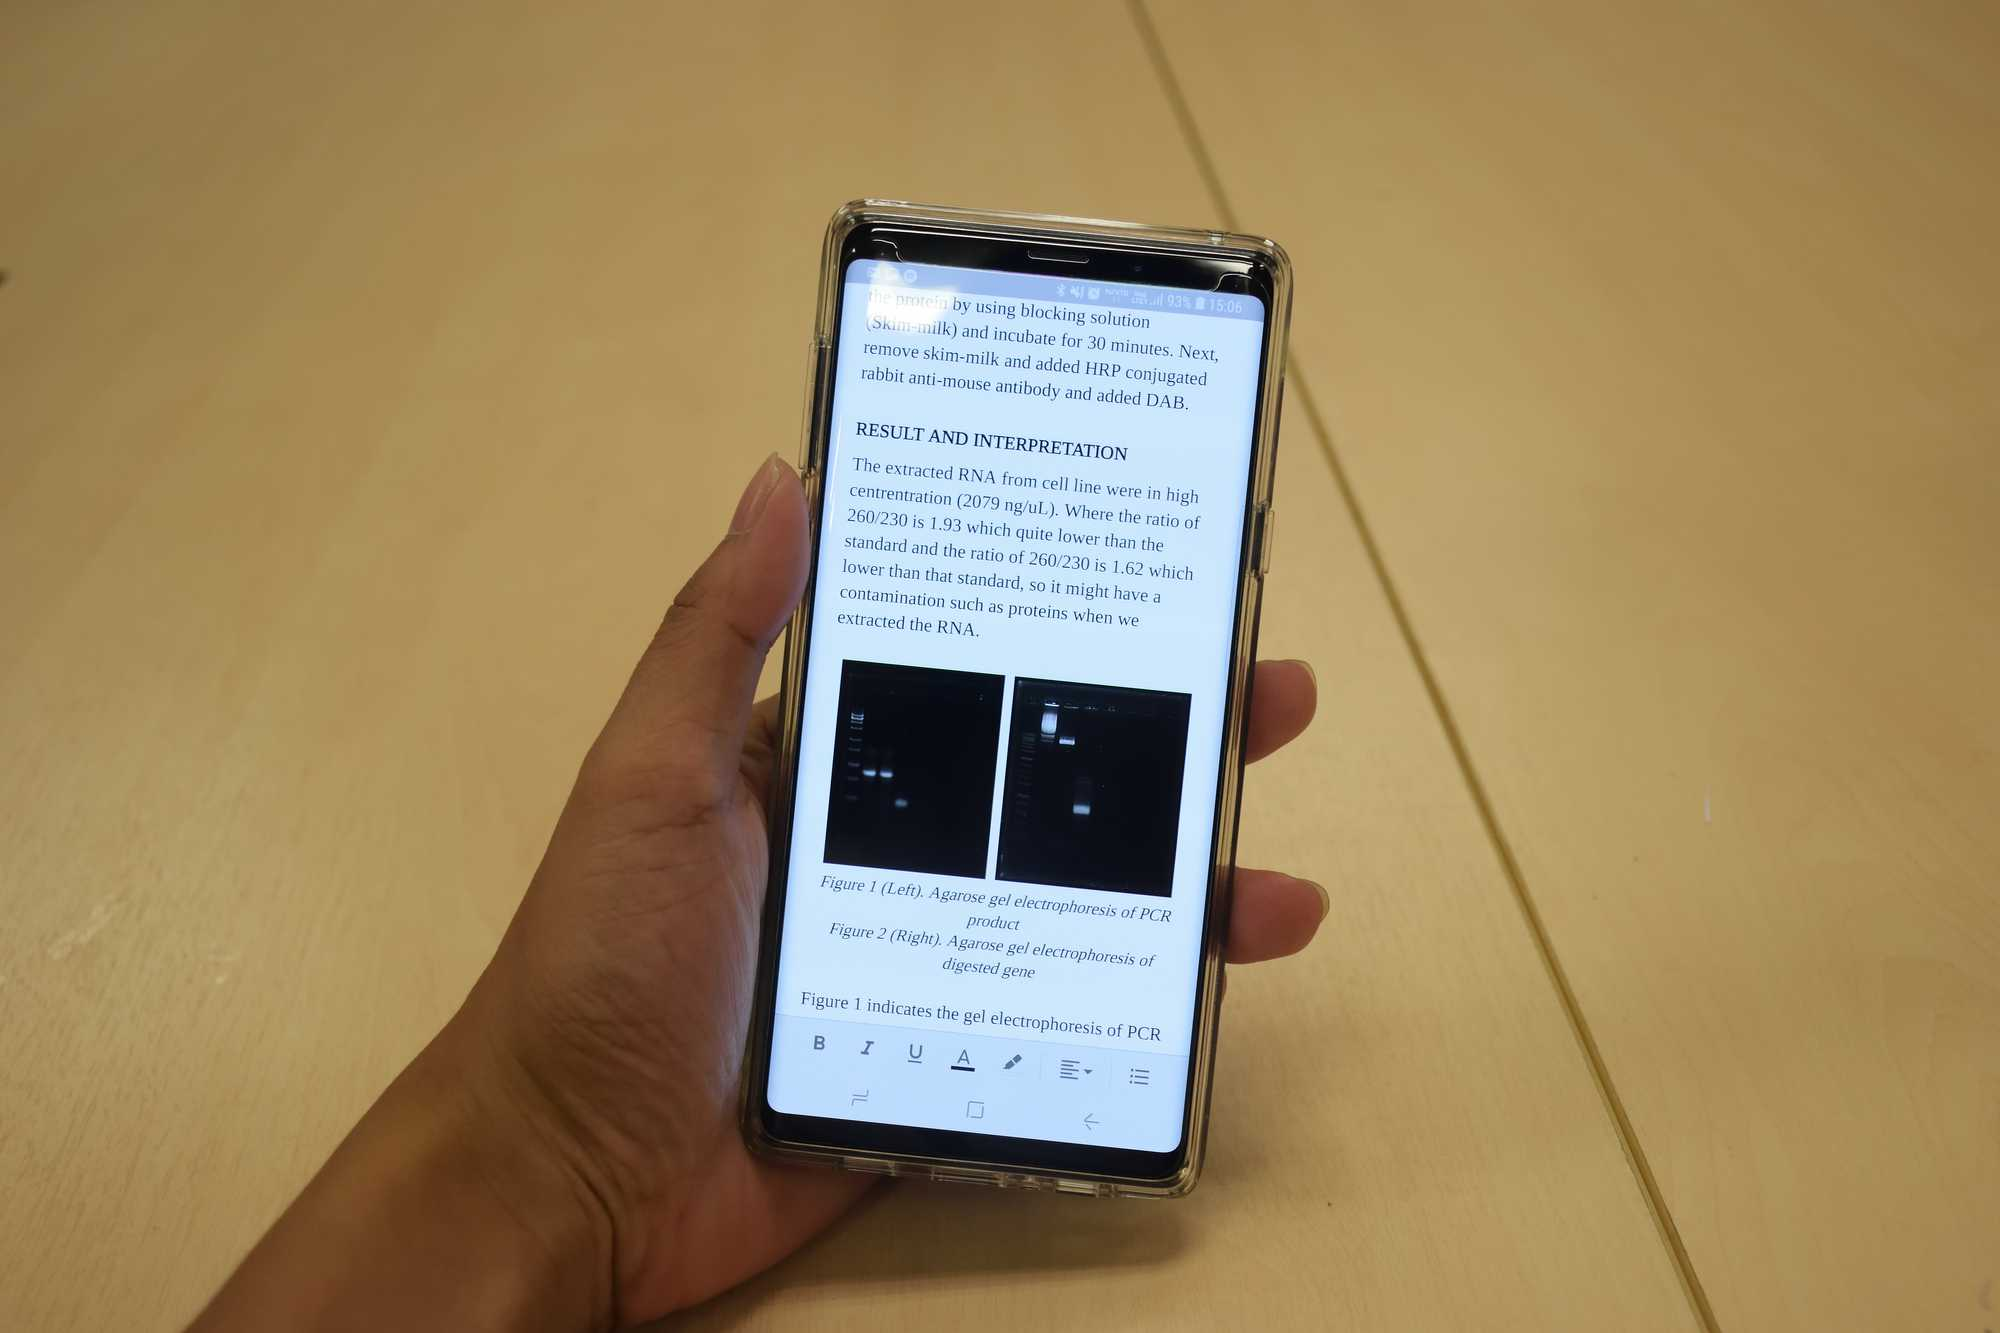 Samsung Galaxy Note 9 with Google Docs